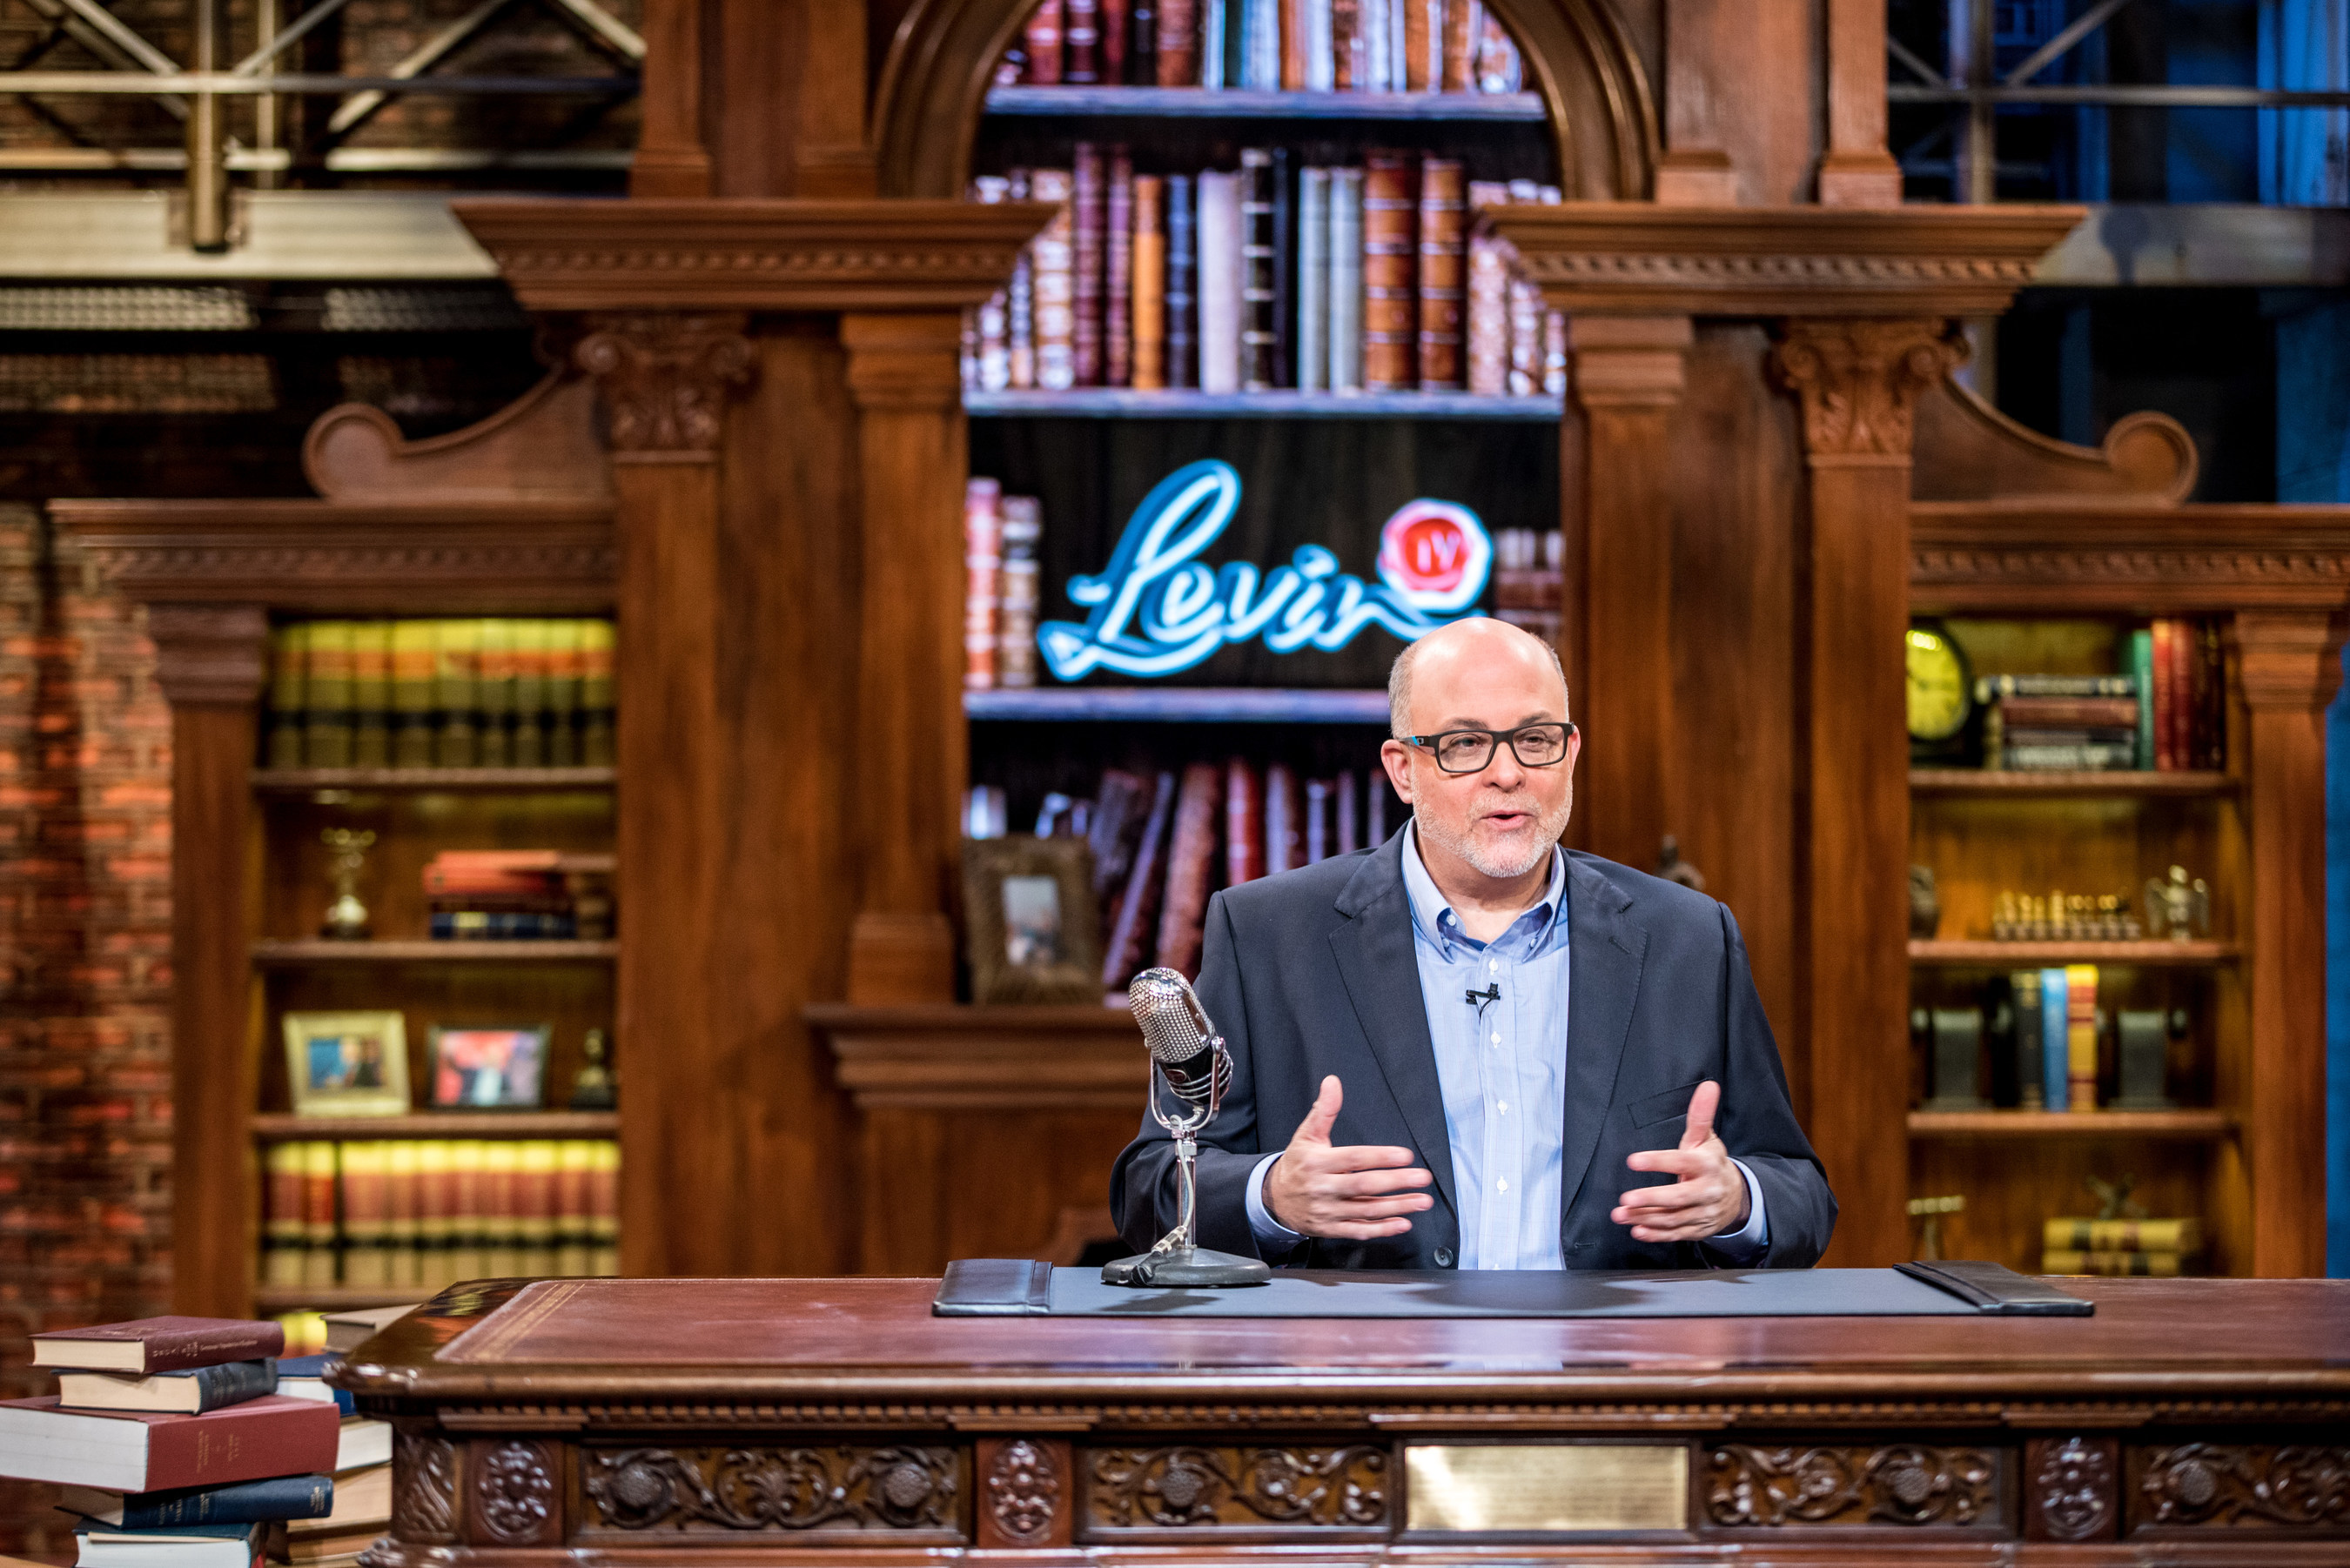 Mark Levin's exciting new political talk show, LevinTV, premieres today. See LevinTV.com for details. Photo courtesy of LevinTV.